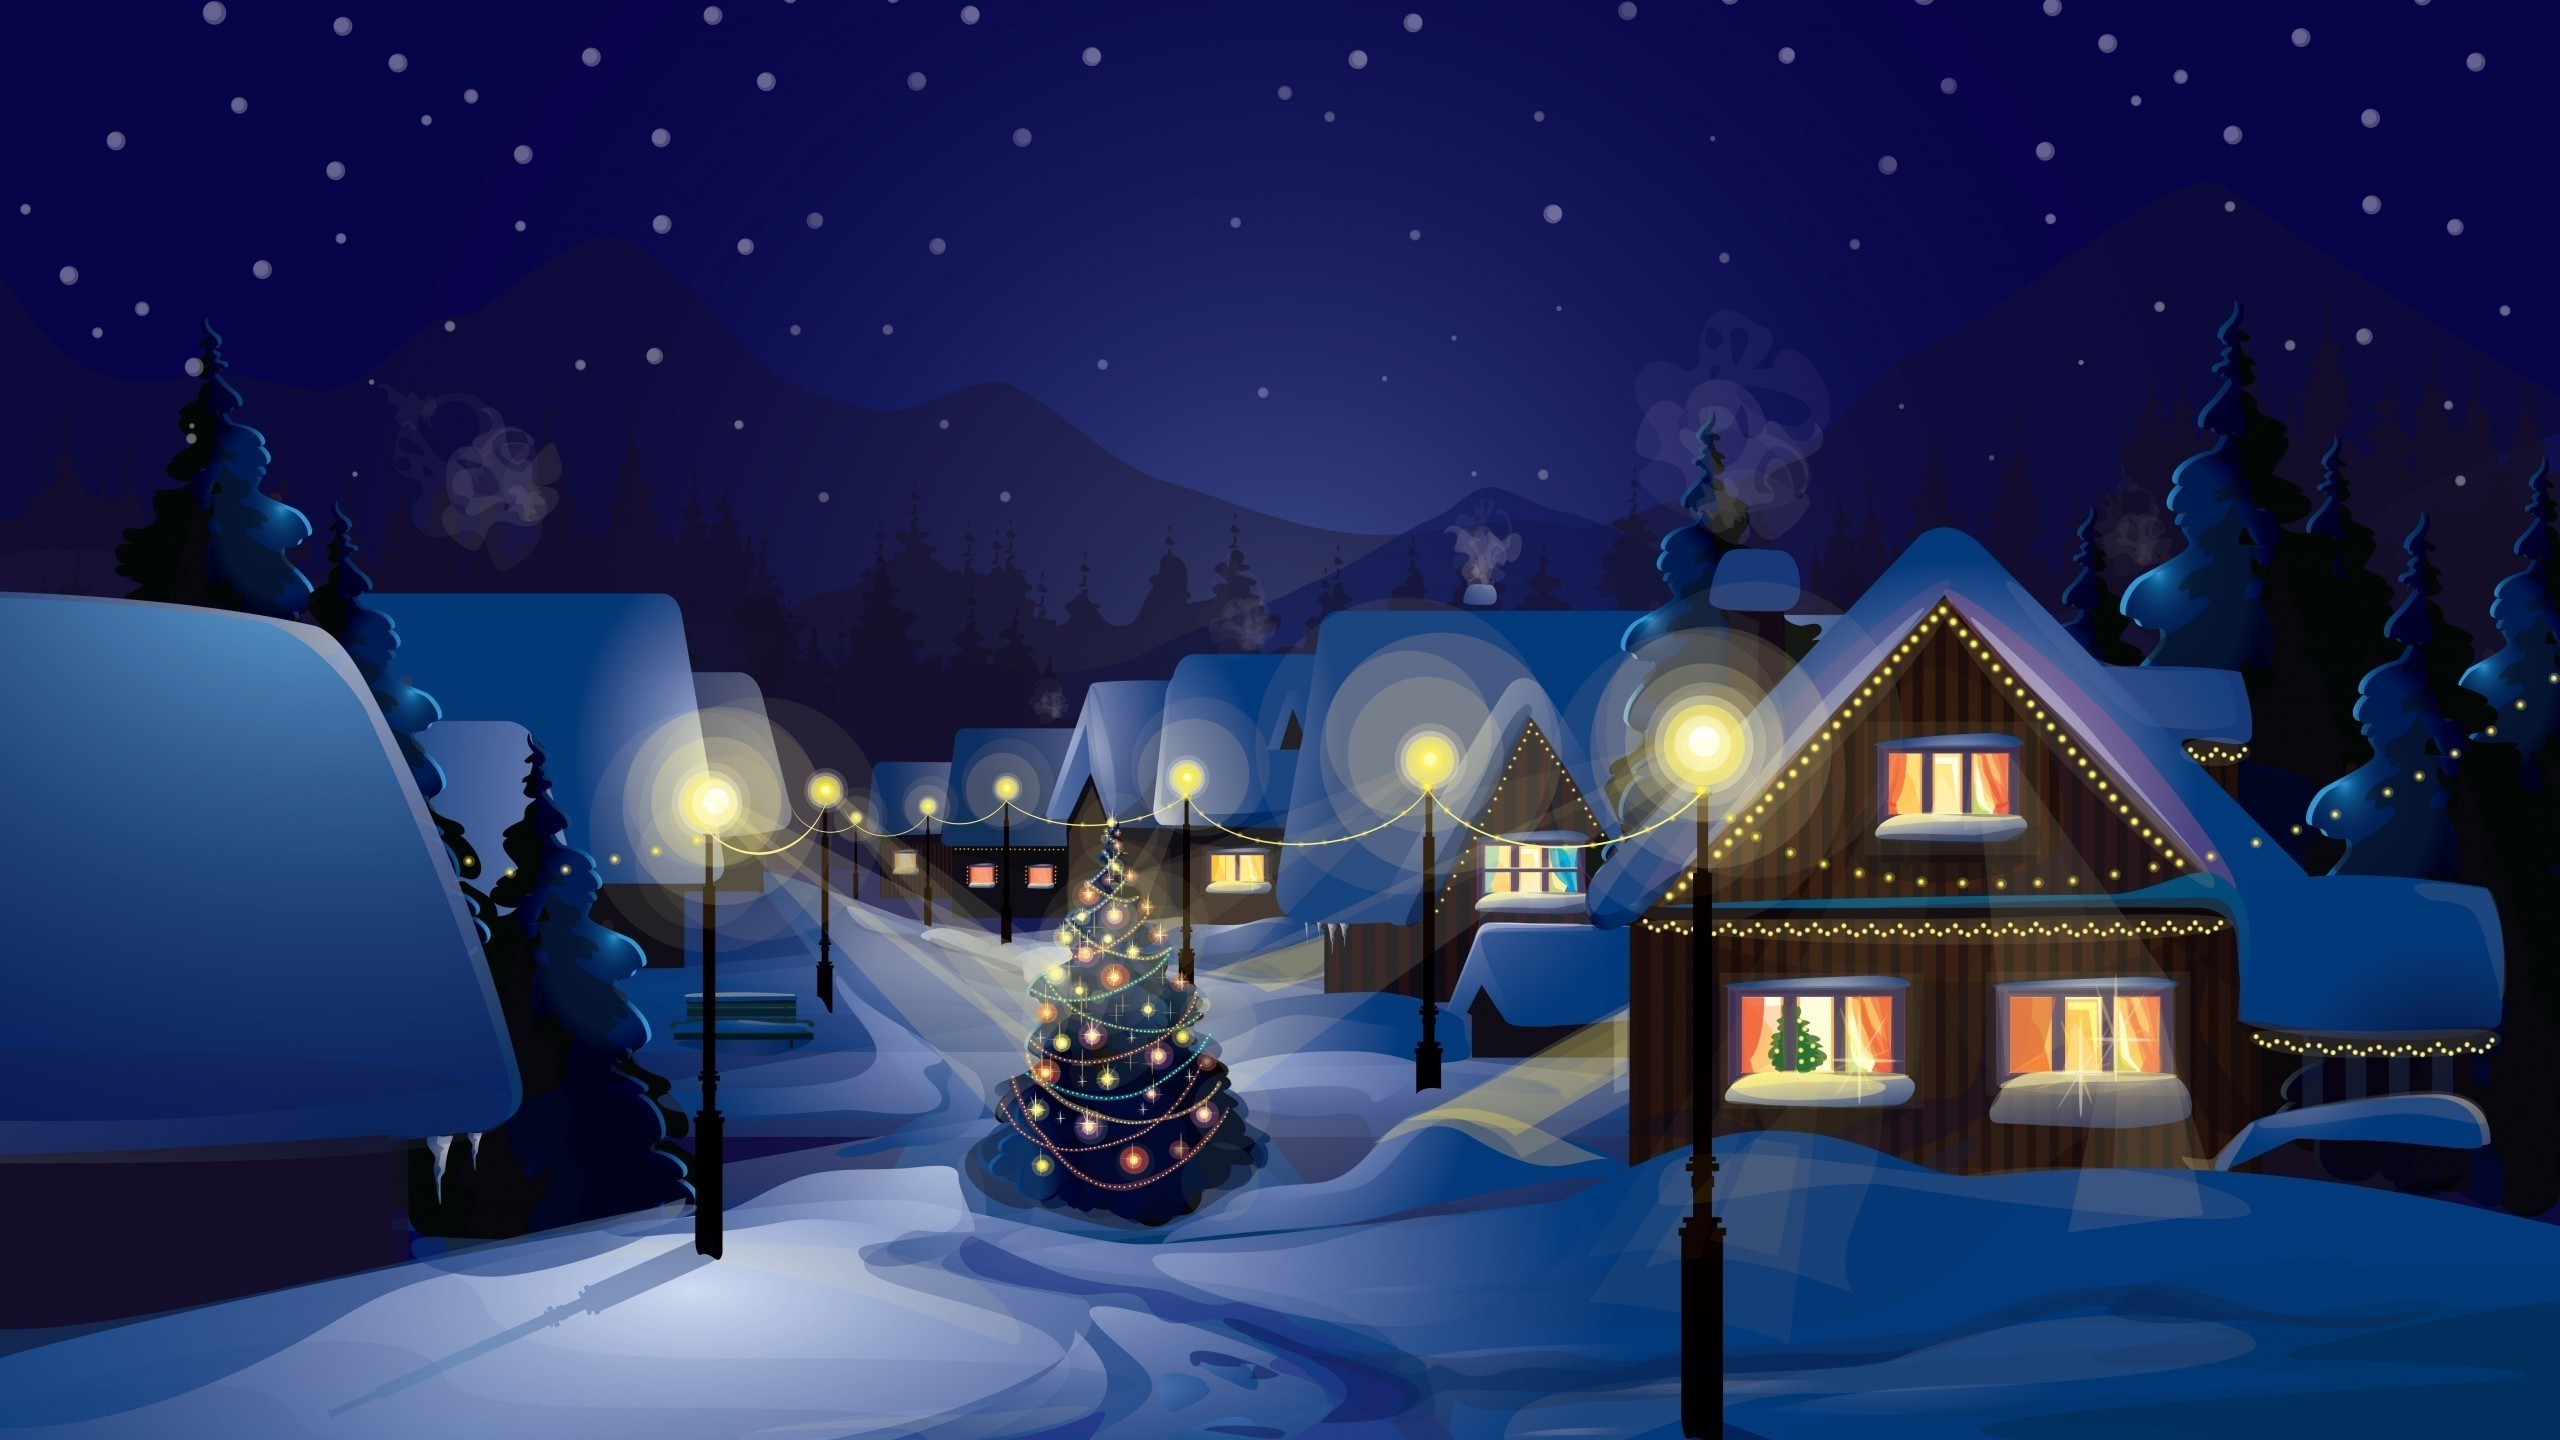 2560x1440 Christmas, Village, Christmas Tree, Snow Wallpapers HD / Desktop and Mobile  Backgrounds